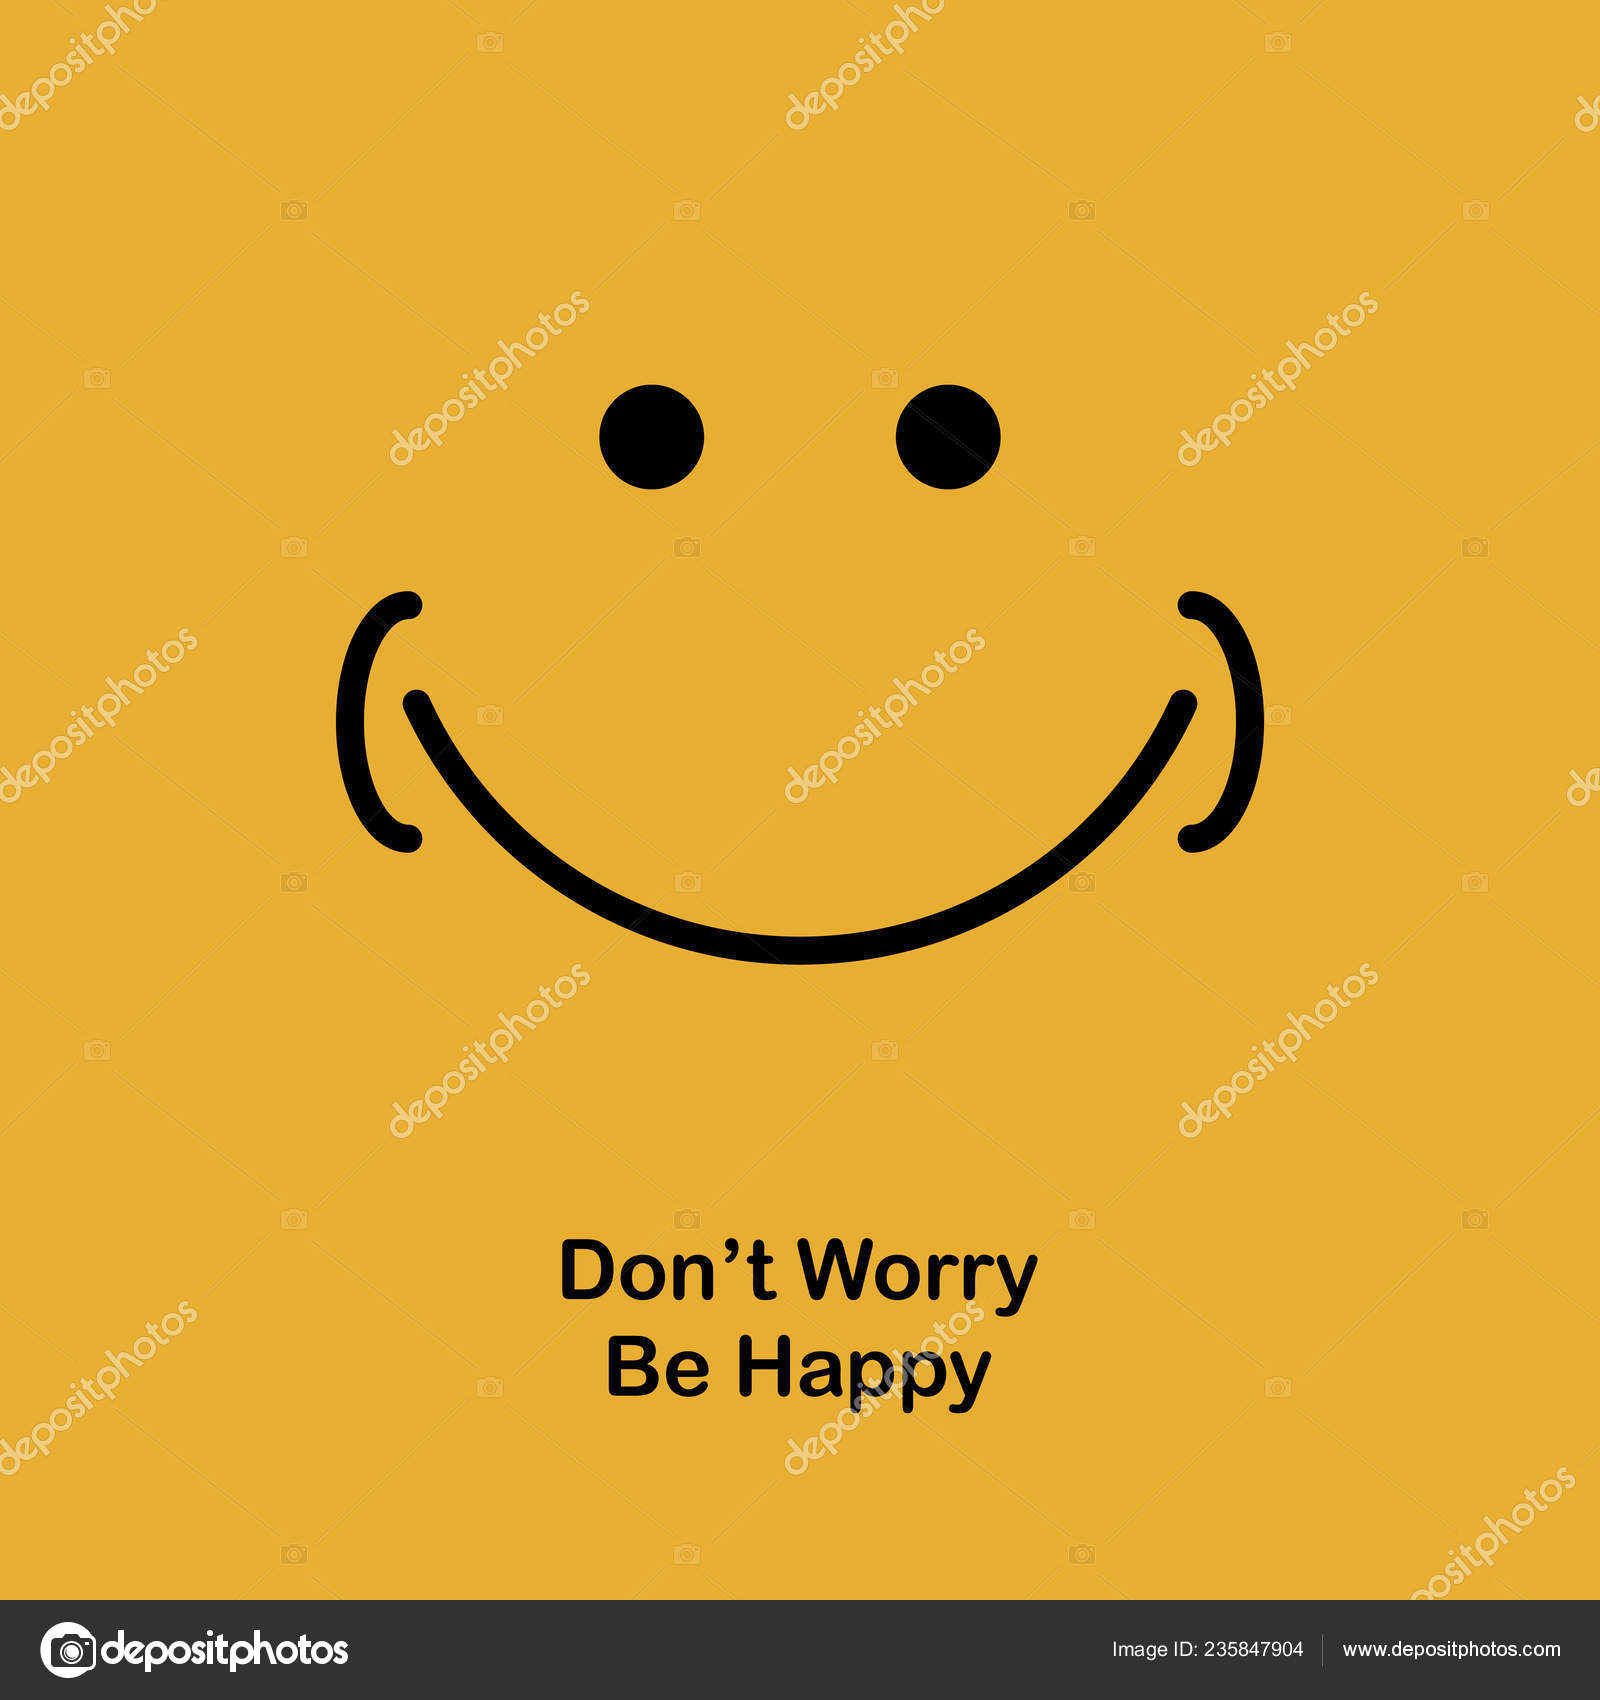 Motivational Quotes Poster Banner Design Happy Smile Vector